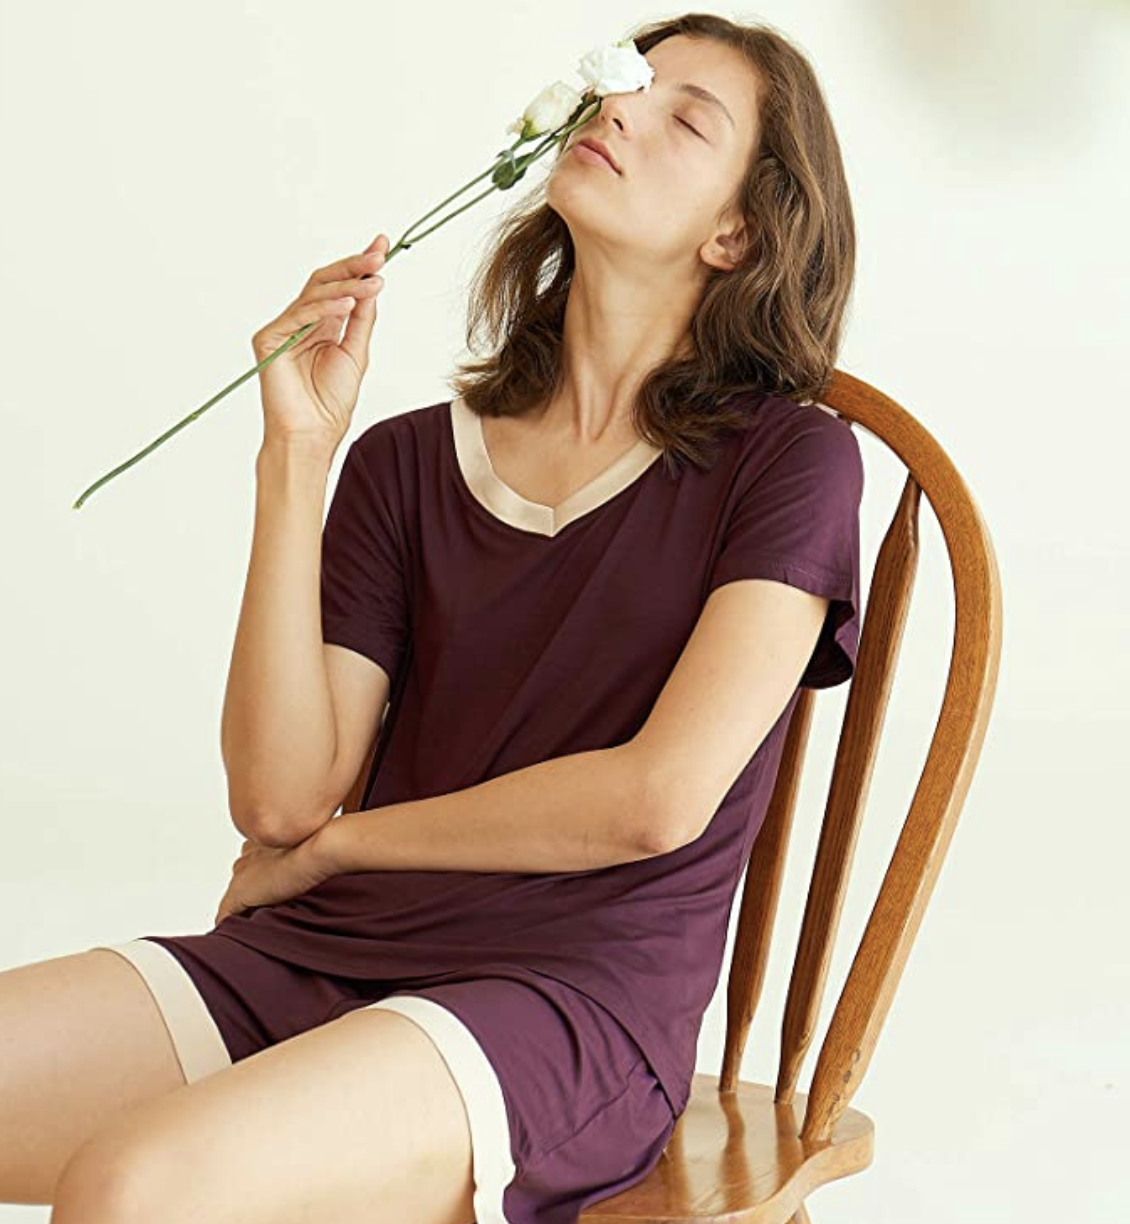 A model in a maroon pajama set with shorts and a v-neck tee